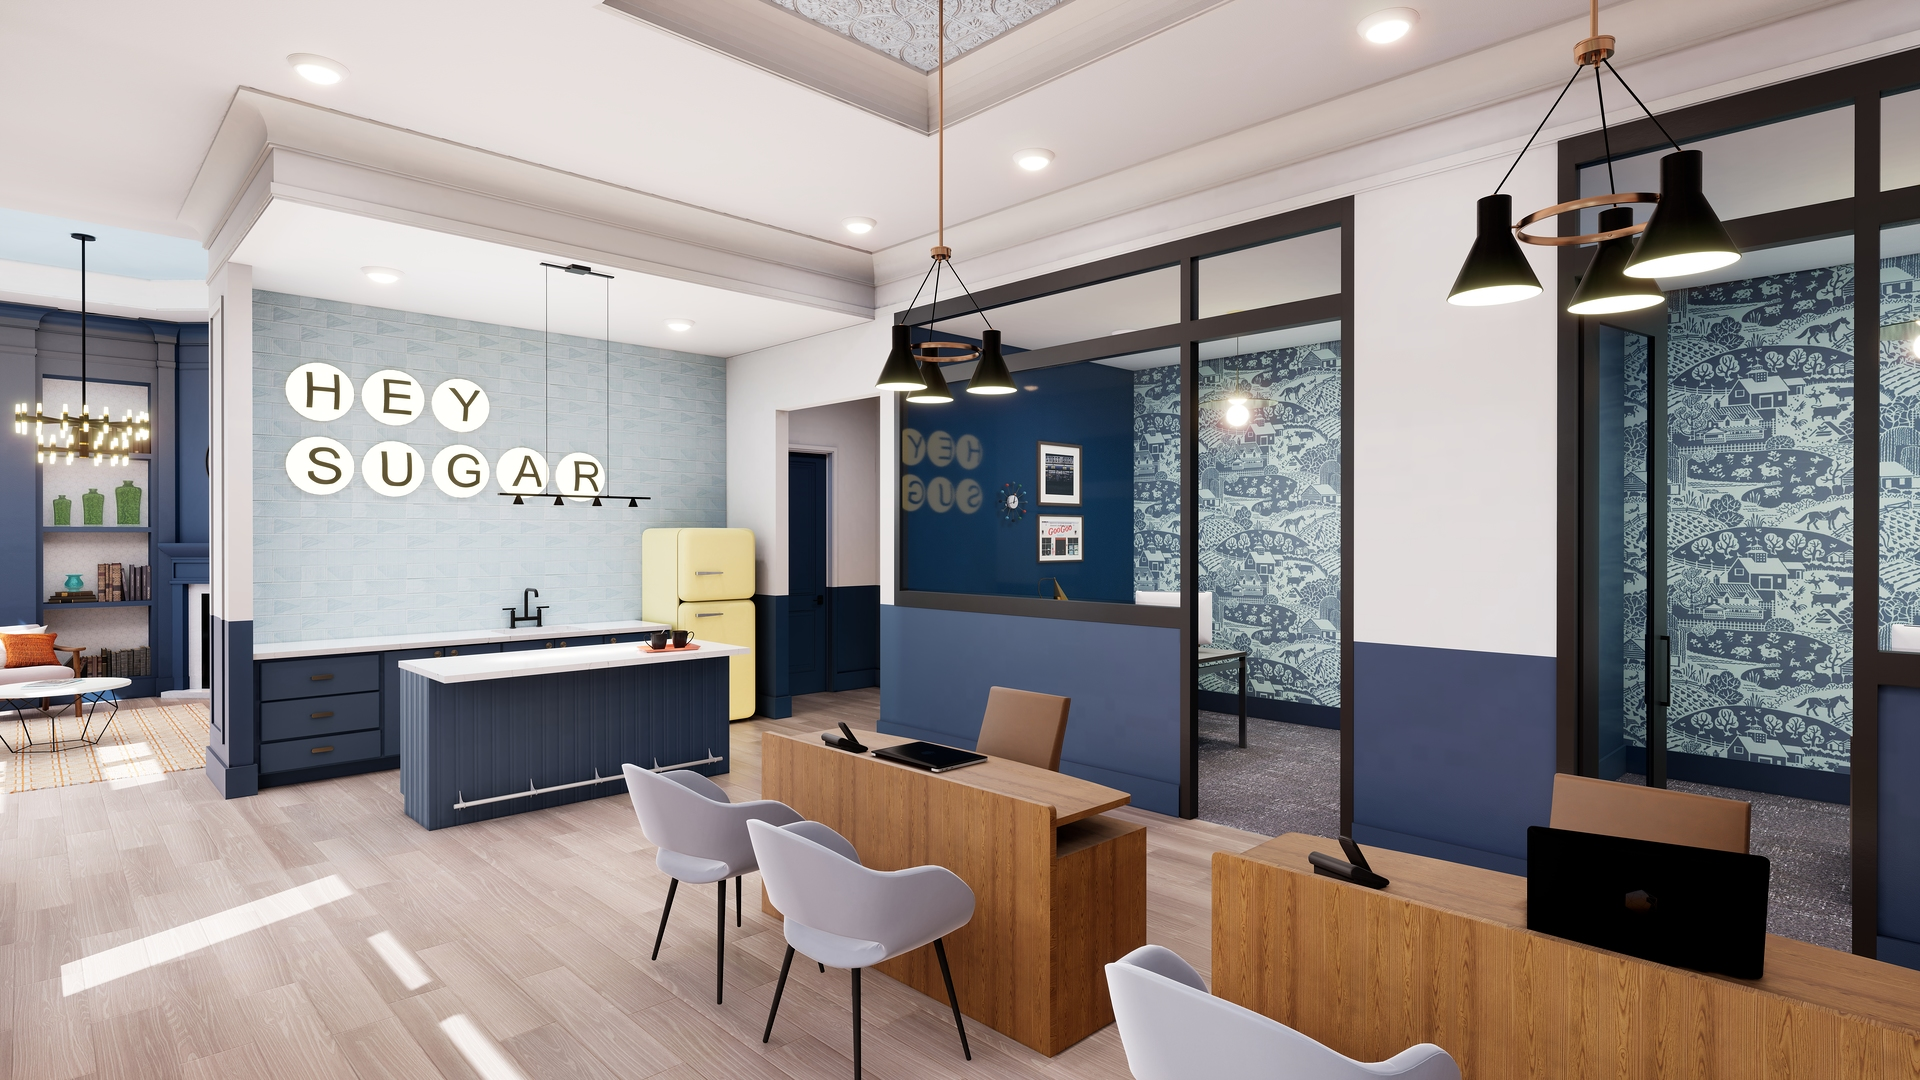 """Leasing Lobby at Broadstone Sugar Hill Rendering """"Hey Sugar"""" is spelled out on the left side wall"""